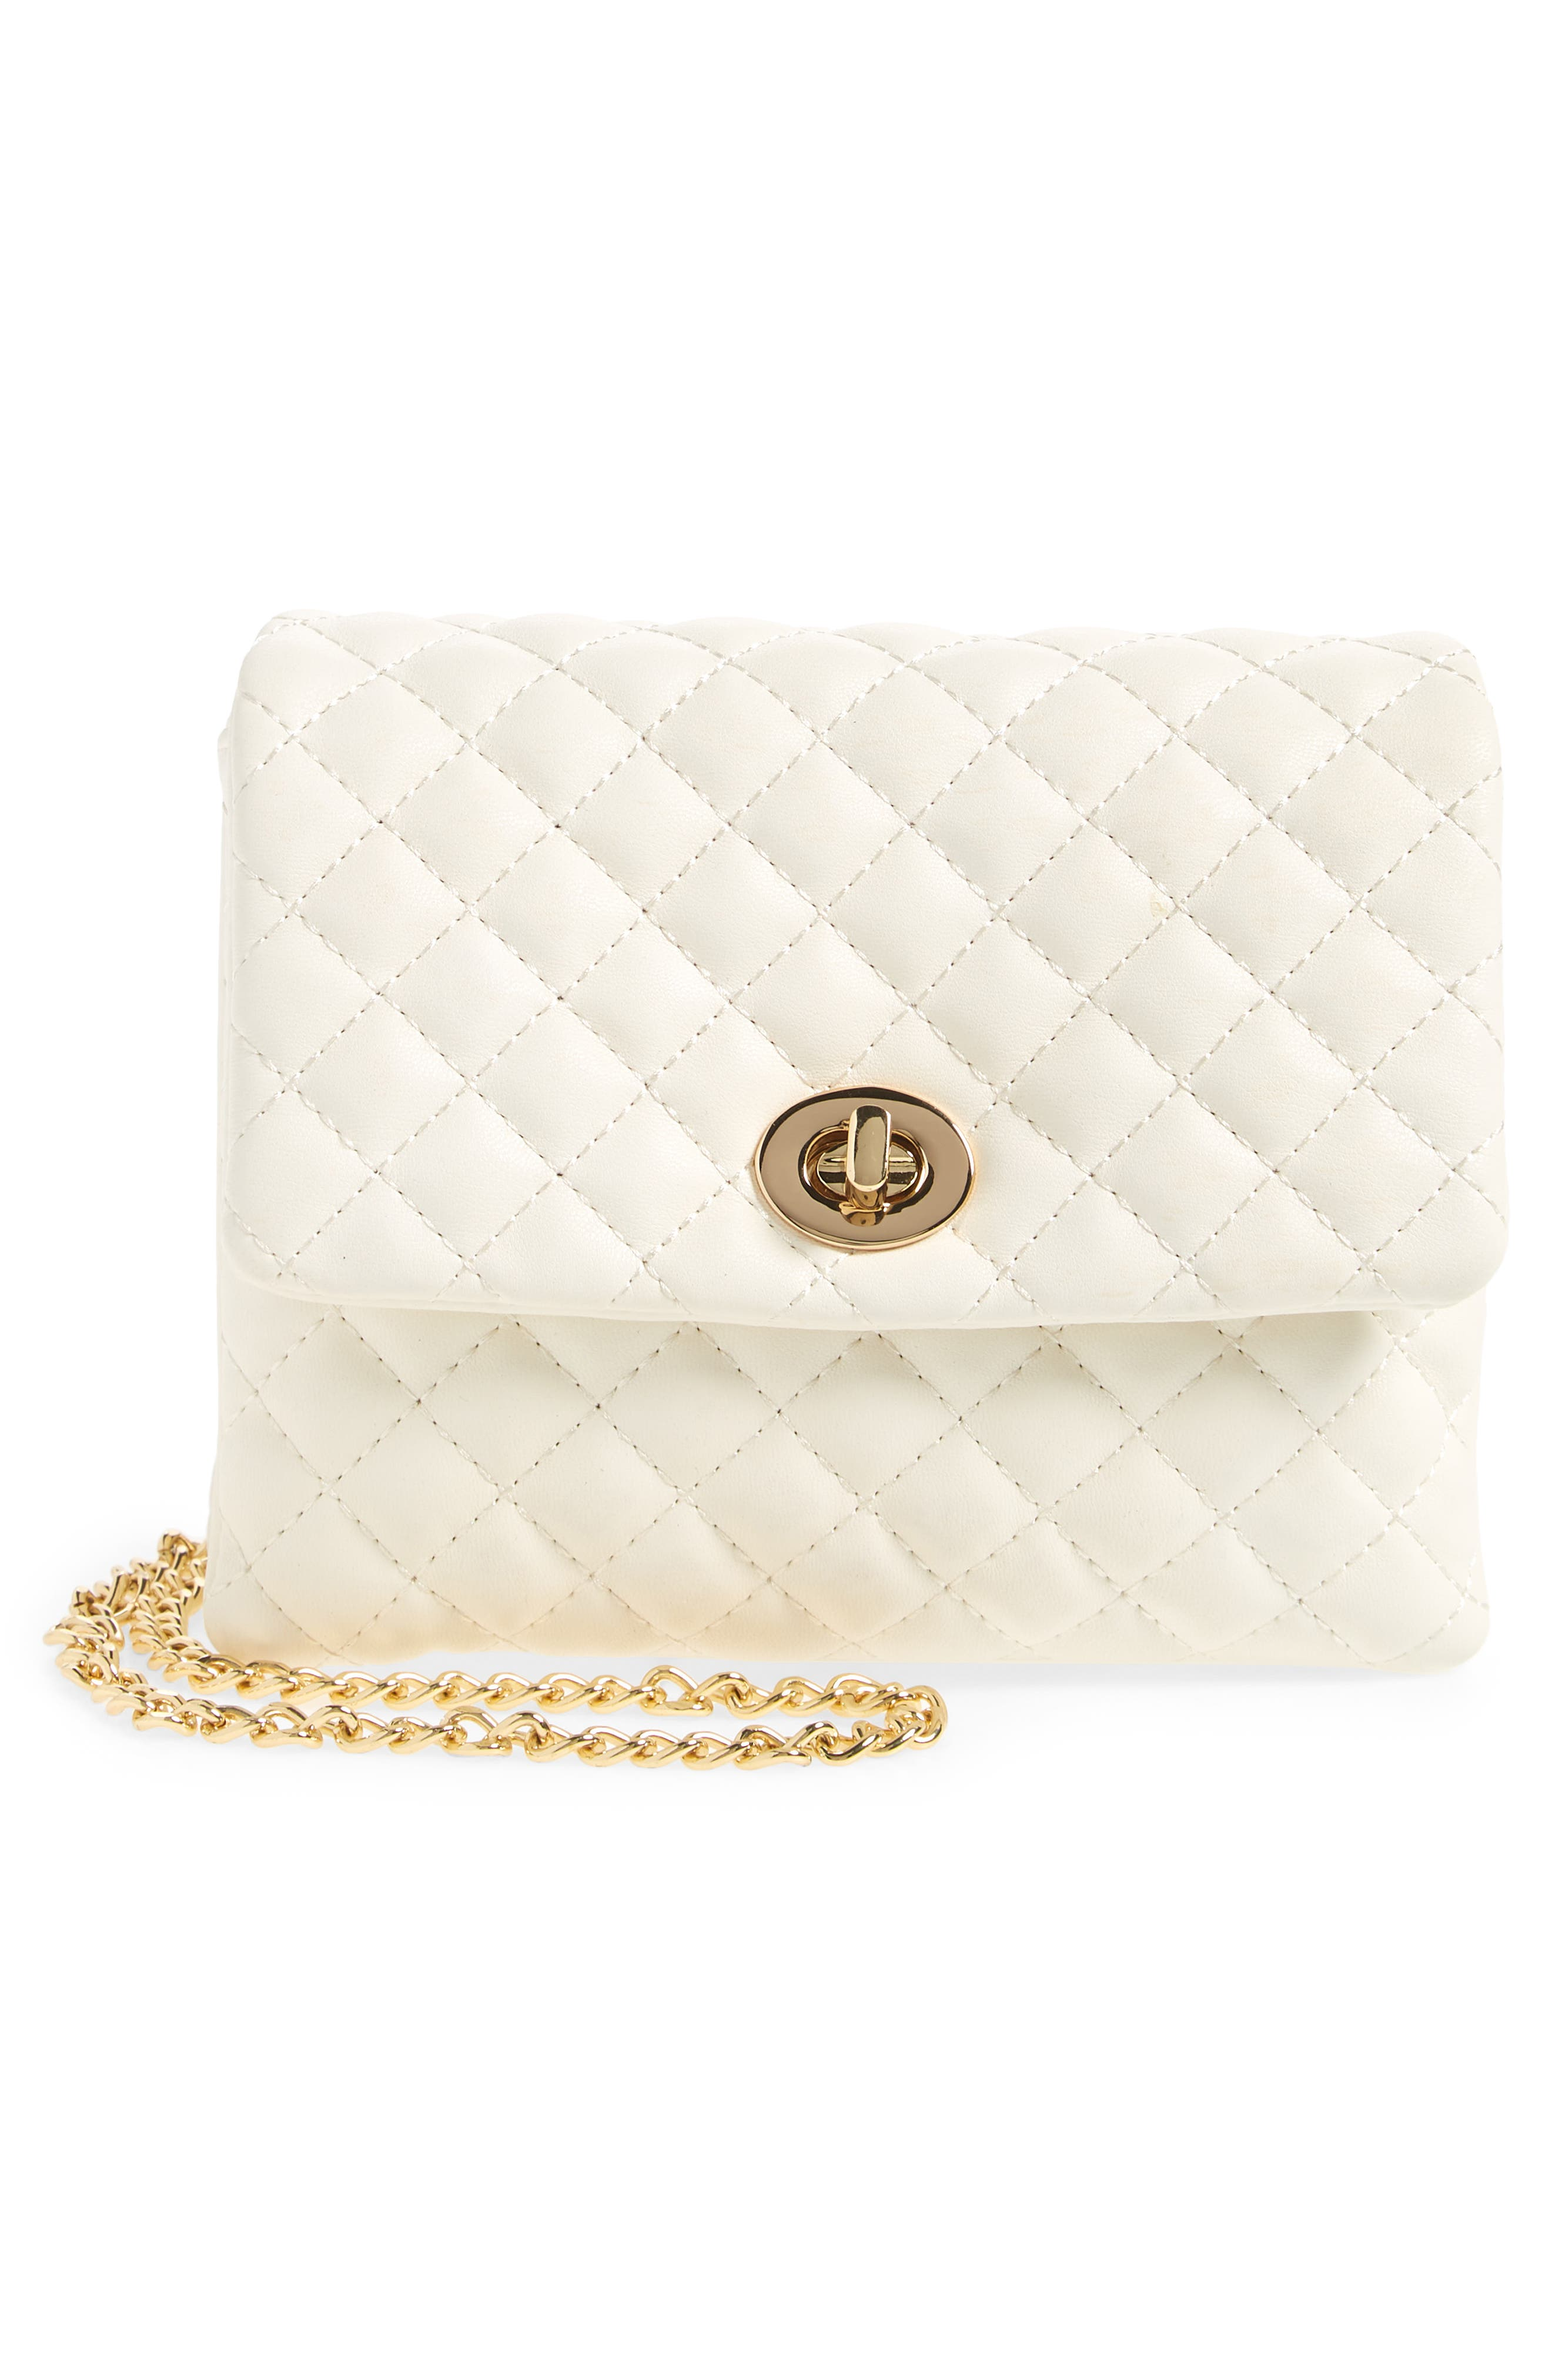 Mali + Lili Quilted Vegan Leather Convertible Belt Bag,                             Alternate thumbnail 4, color,                             WHITE